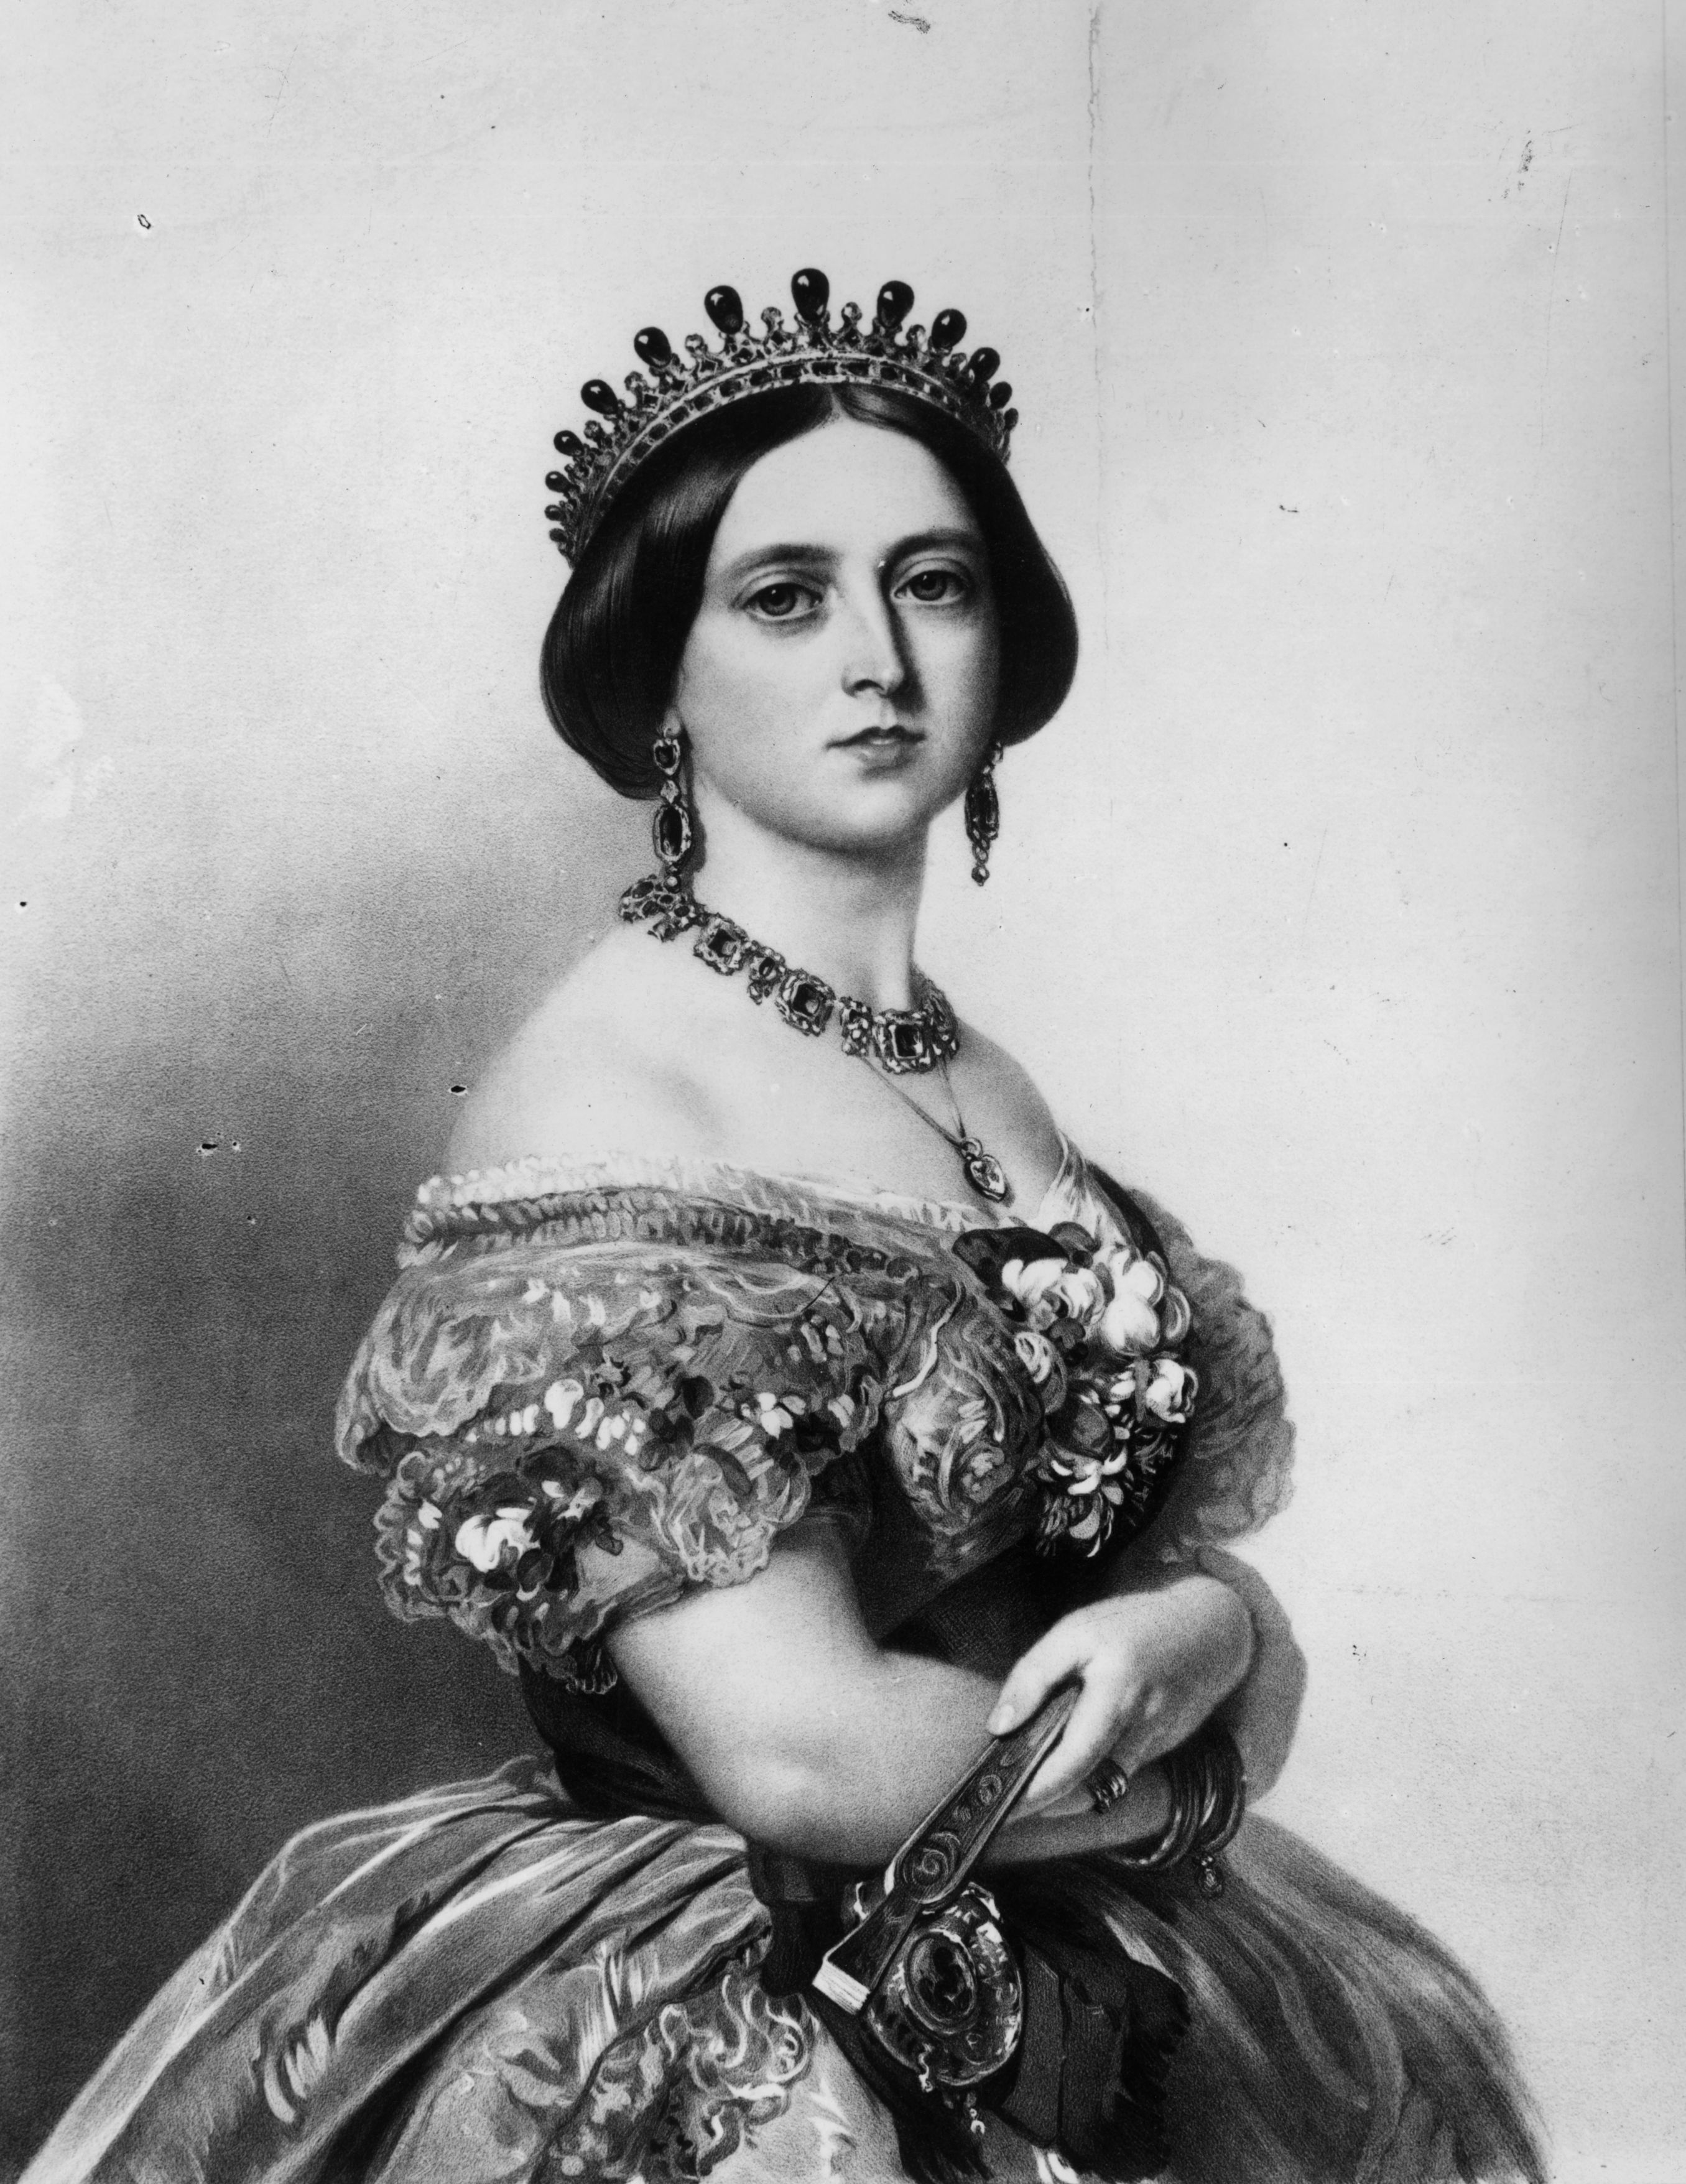 Queen Victoria ruled the British Empire during the Crimean